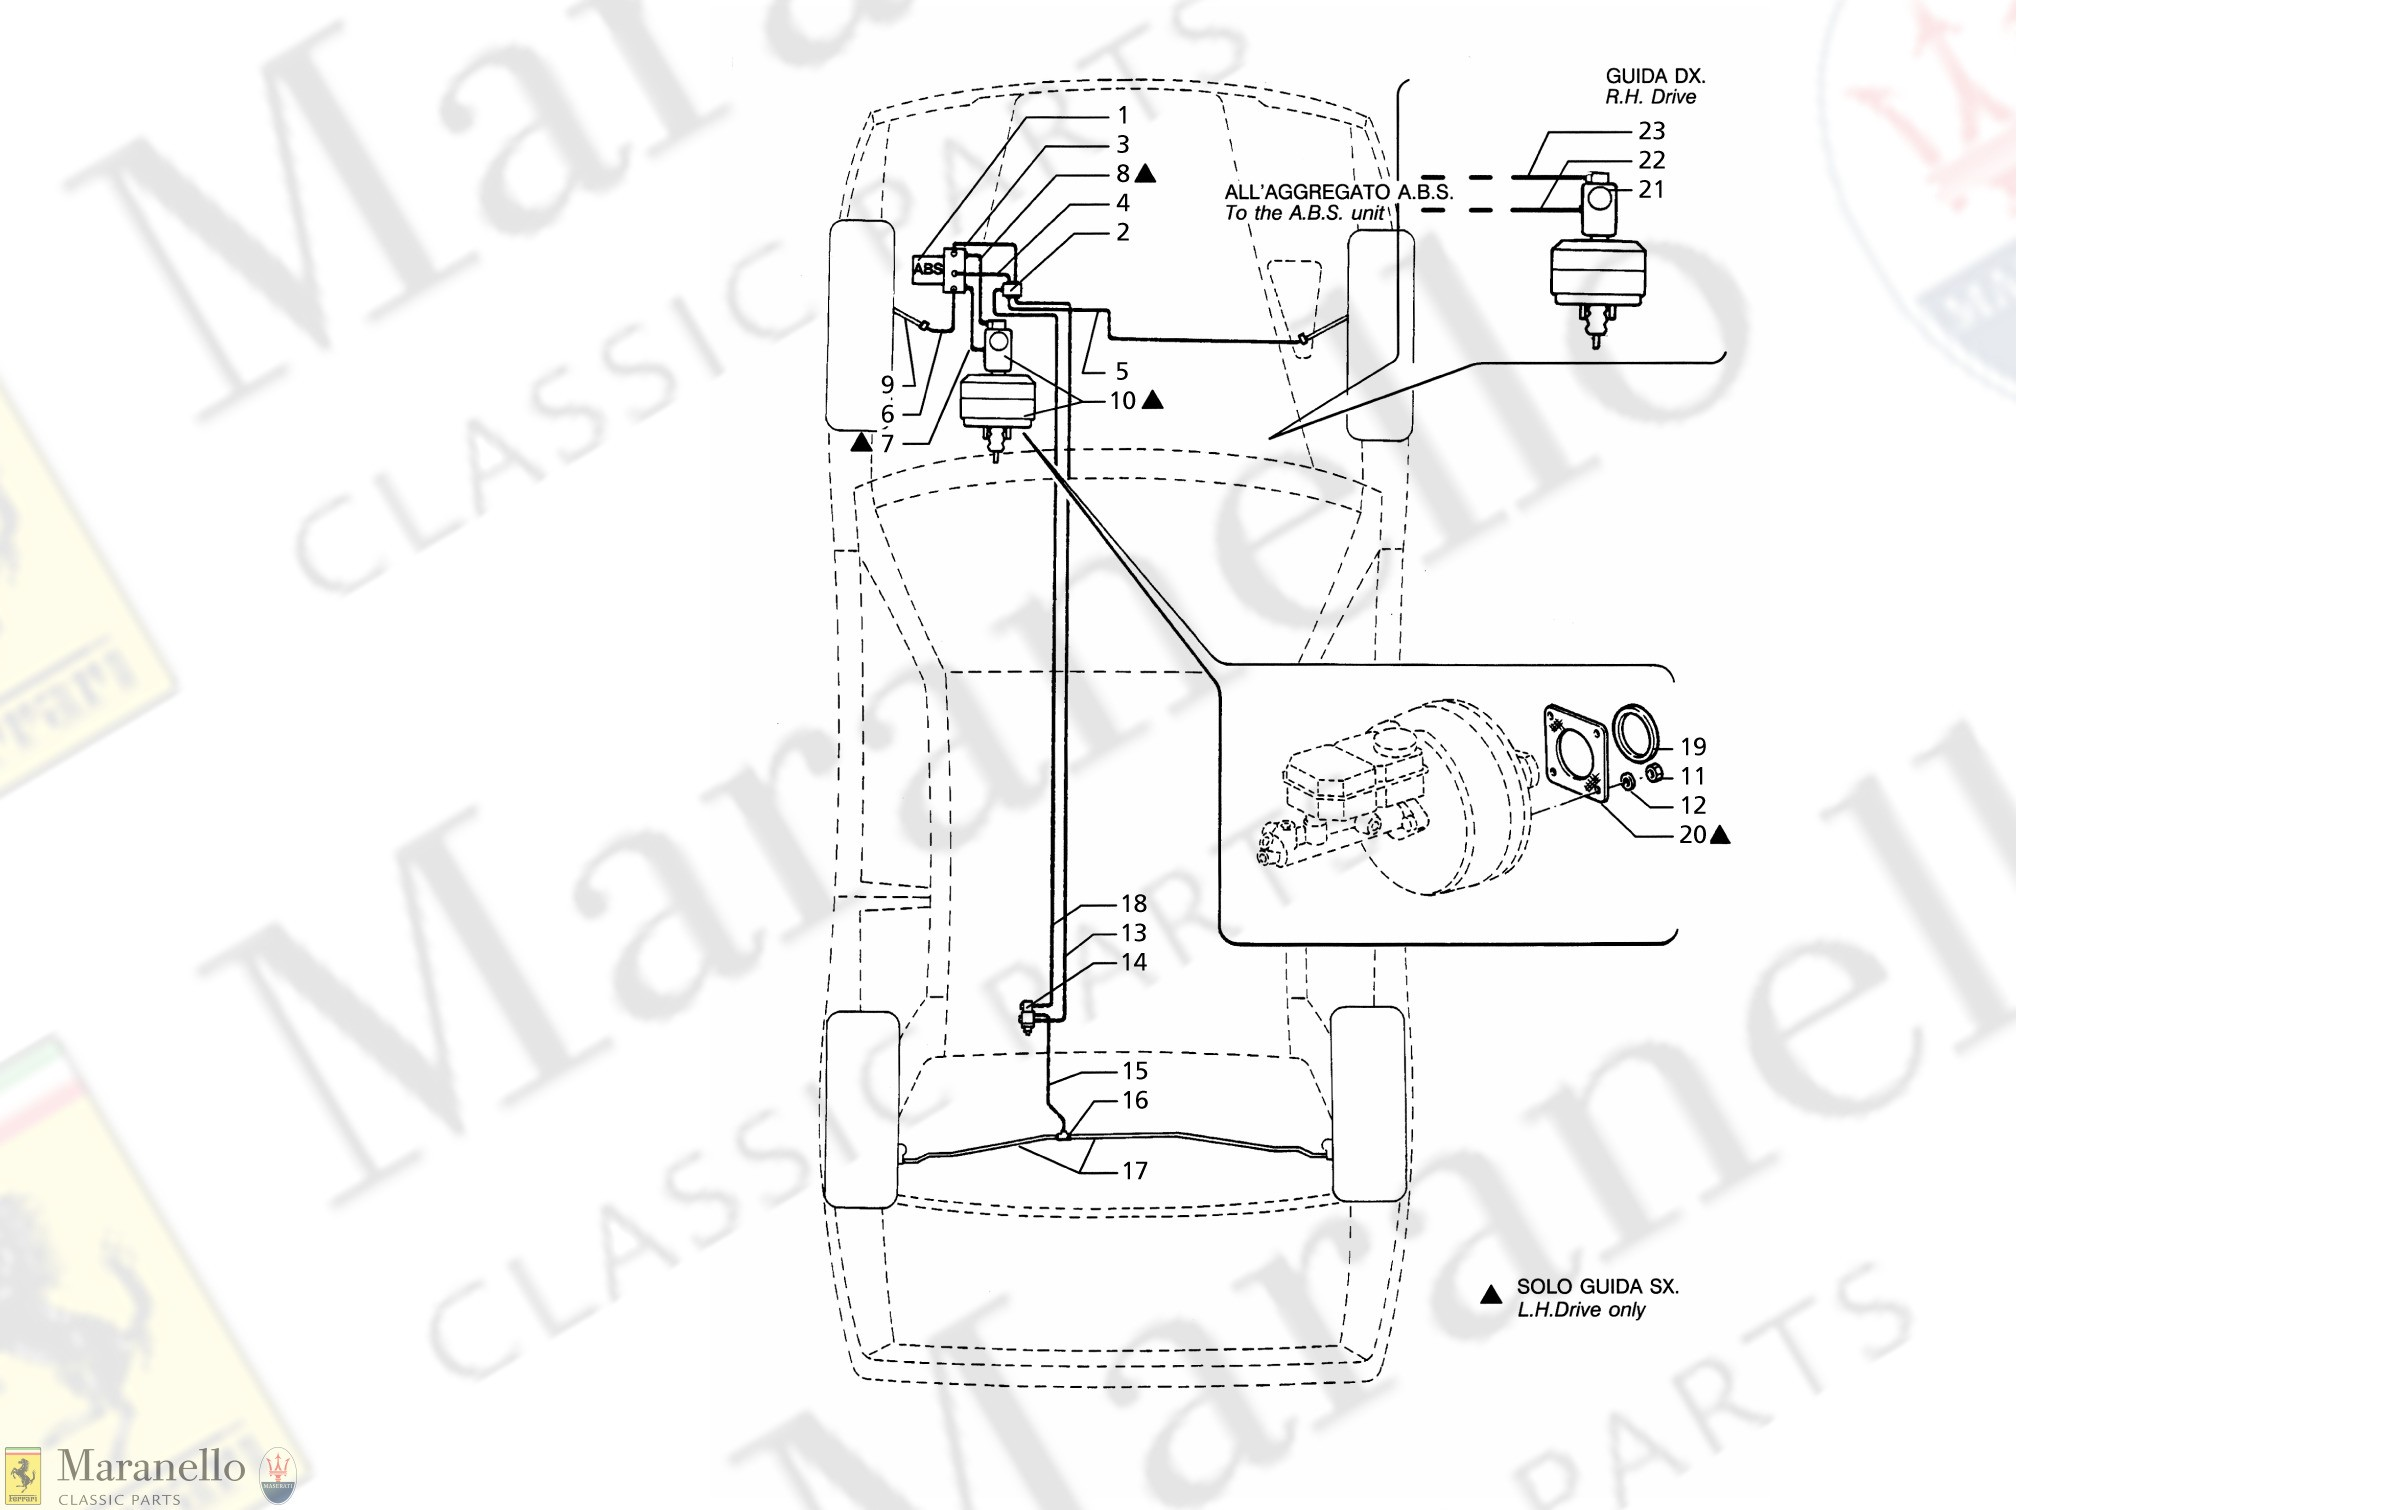 Abs System Diagrm 042 A B S Hydraulic Brake Lines Parts Diagram for Of Abs System Diagrm